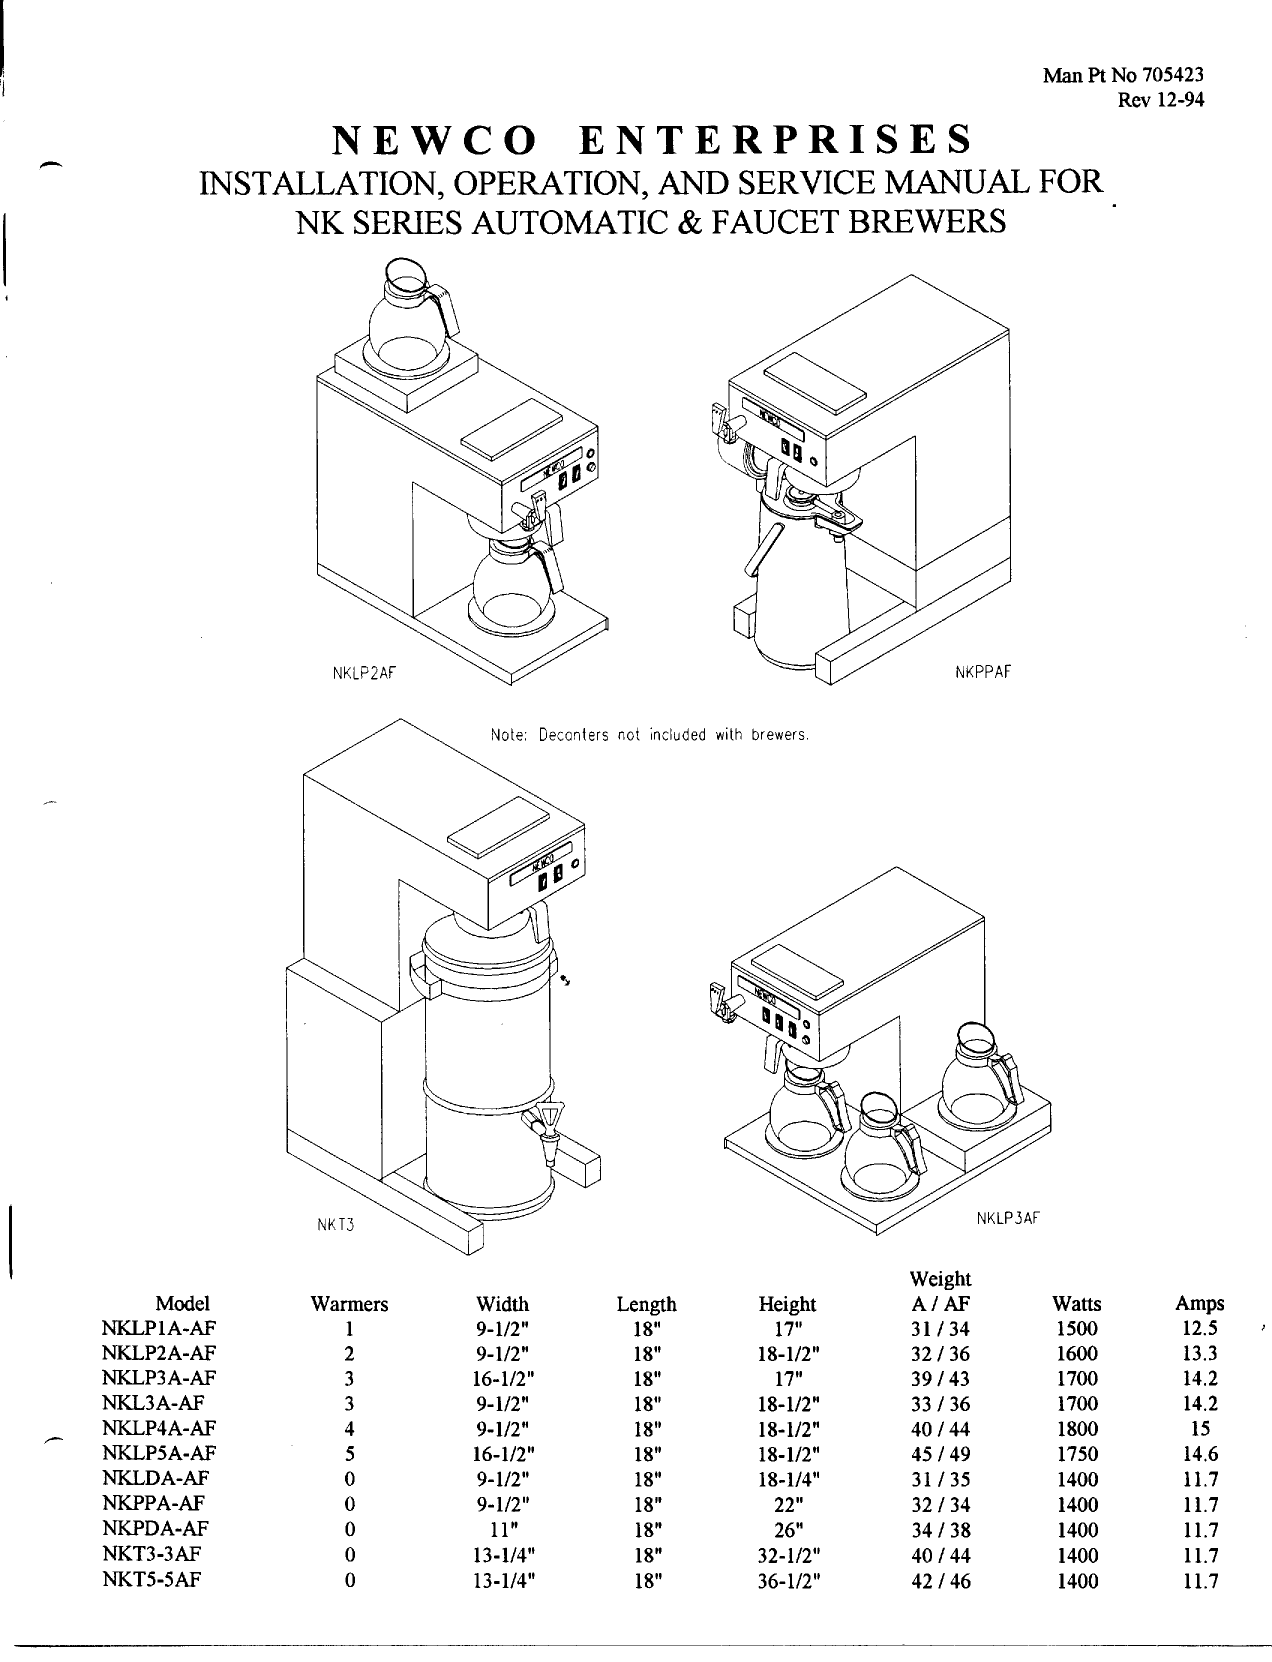 Newco Coffee Maker Service Manual : Download free pdf for Newco NKL3AF Coffee Maker manual